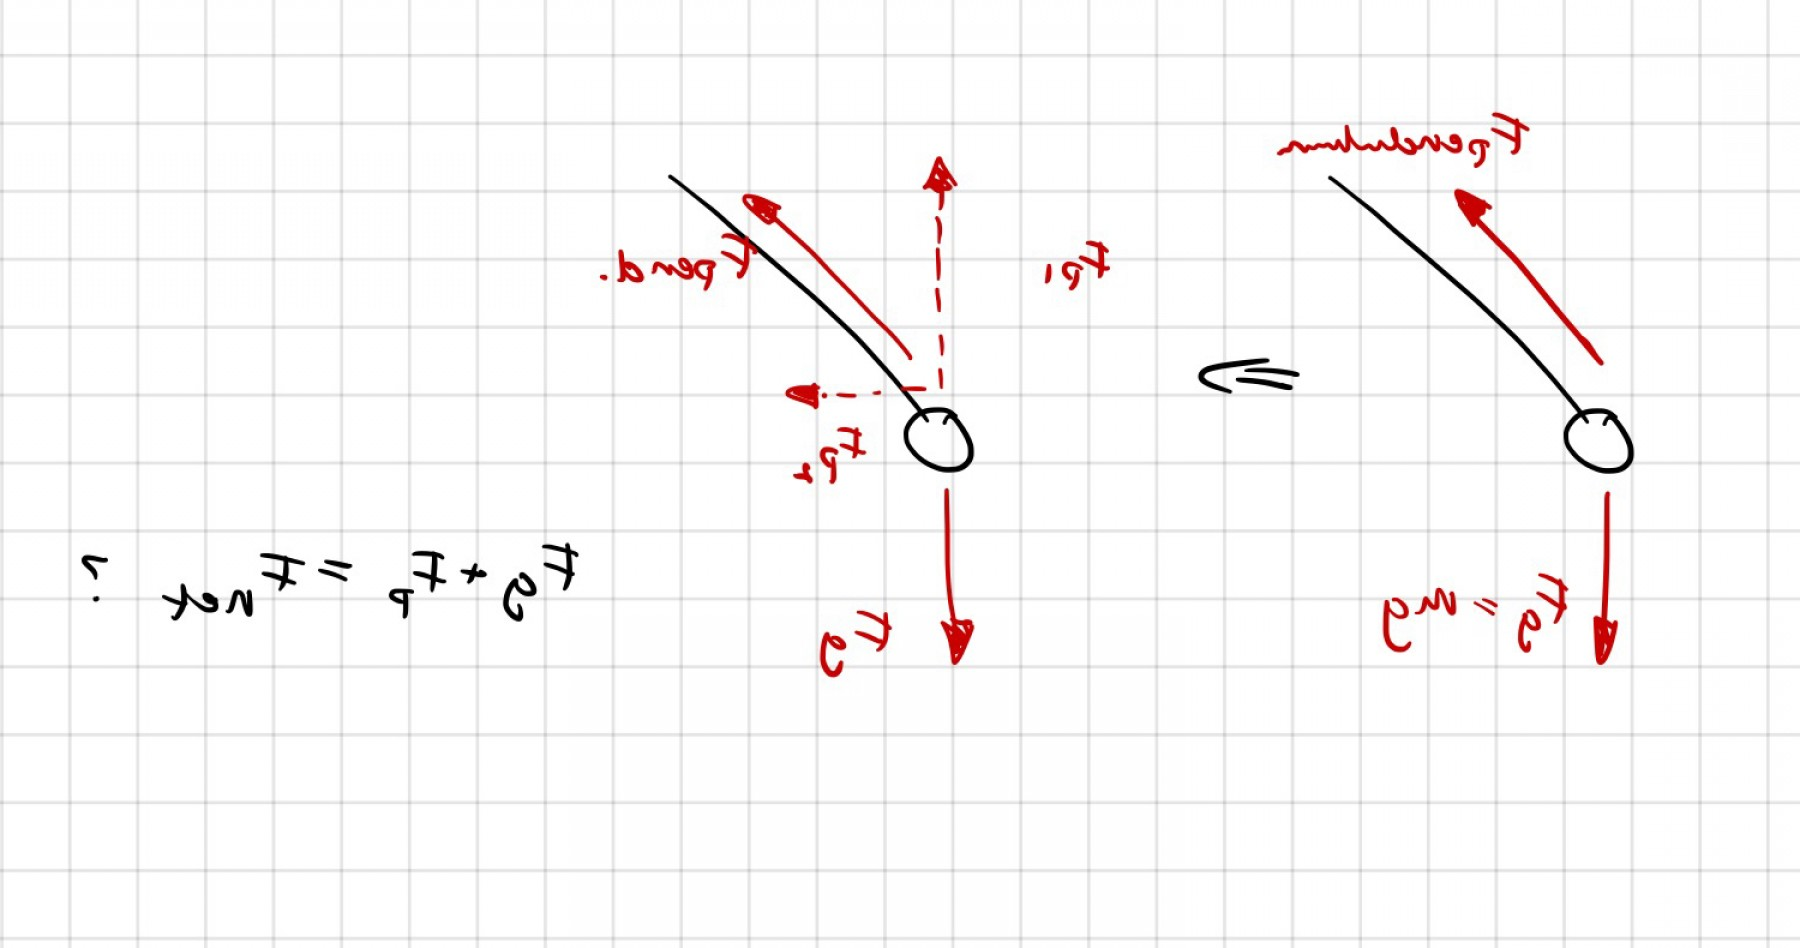 Gravitational Force Vectors: Why Do We Not Care About Force From The String On A Pendulum Or The Normal Force